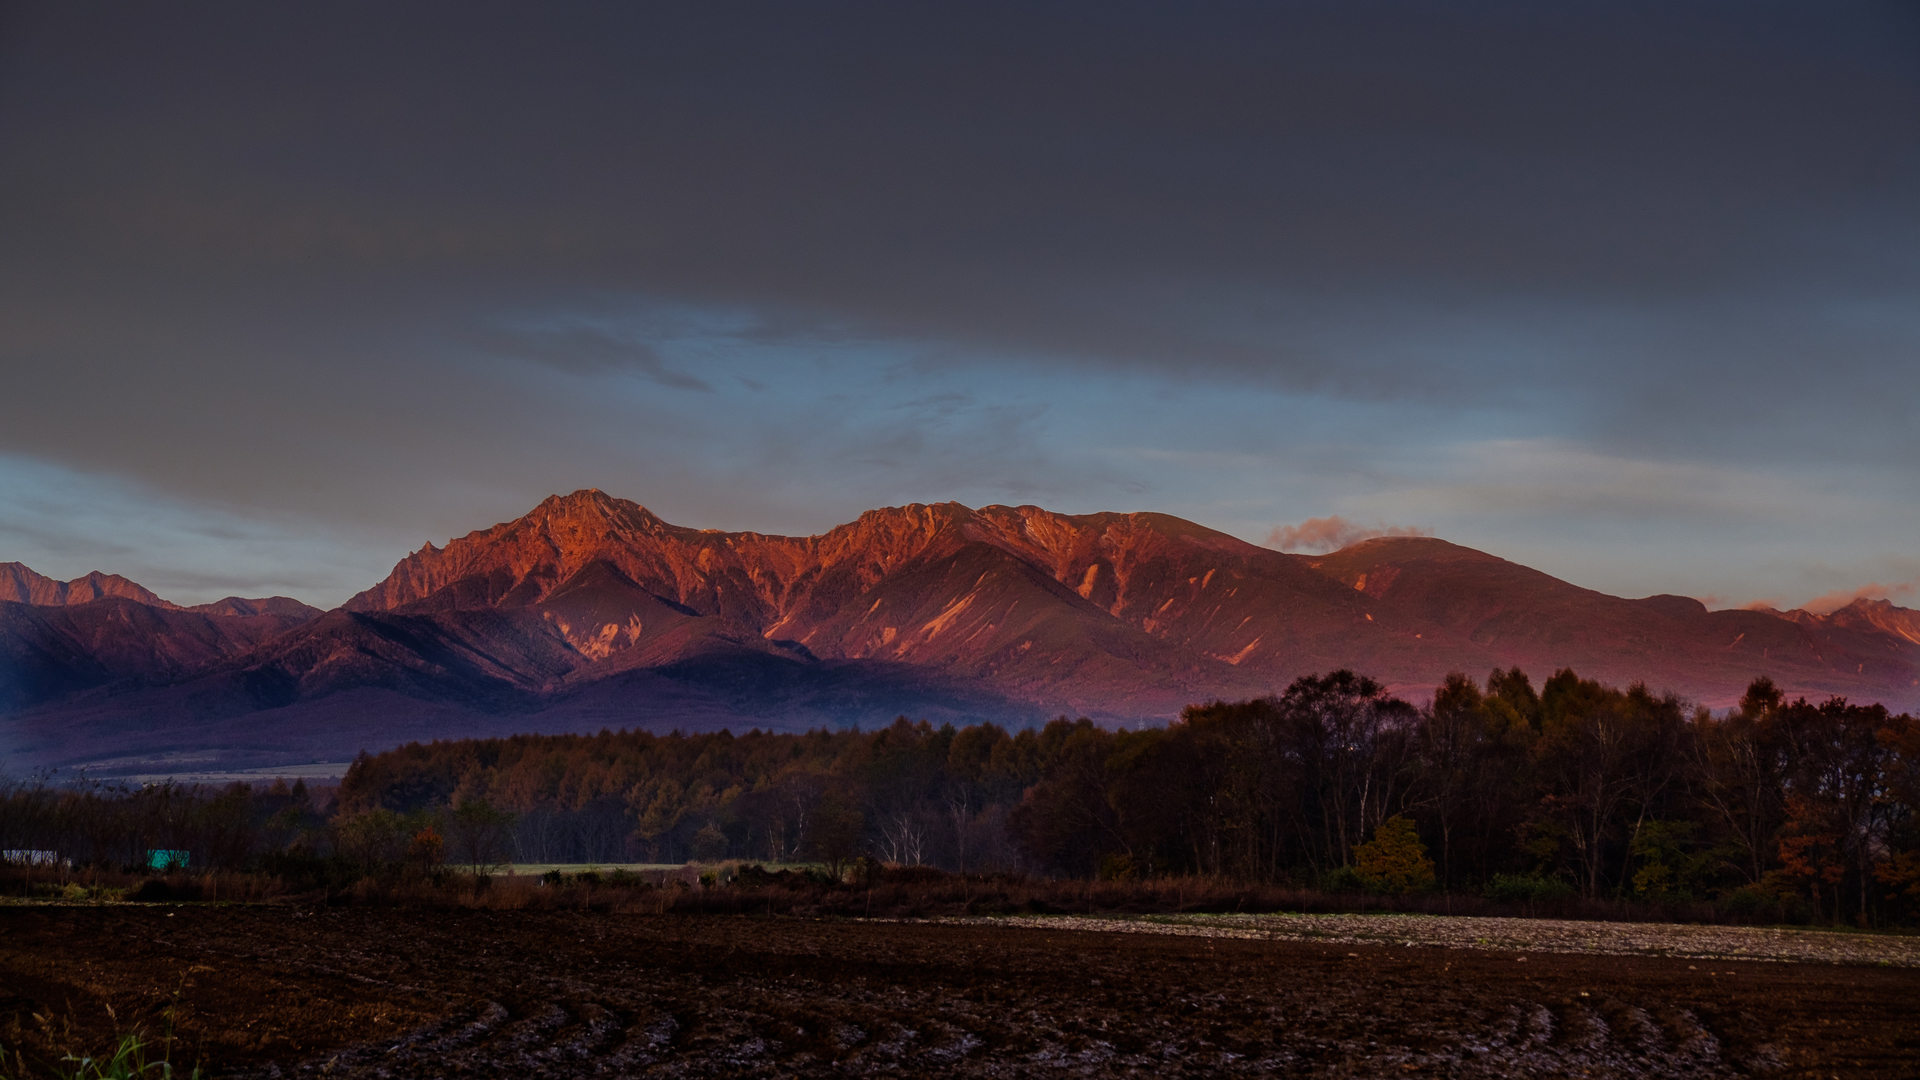 nagano-Mt.Yatsugatake_dyed_in_the_morning_glow-m.jpg